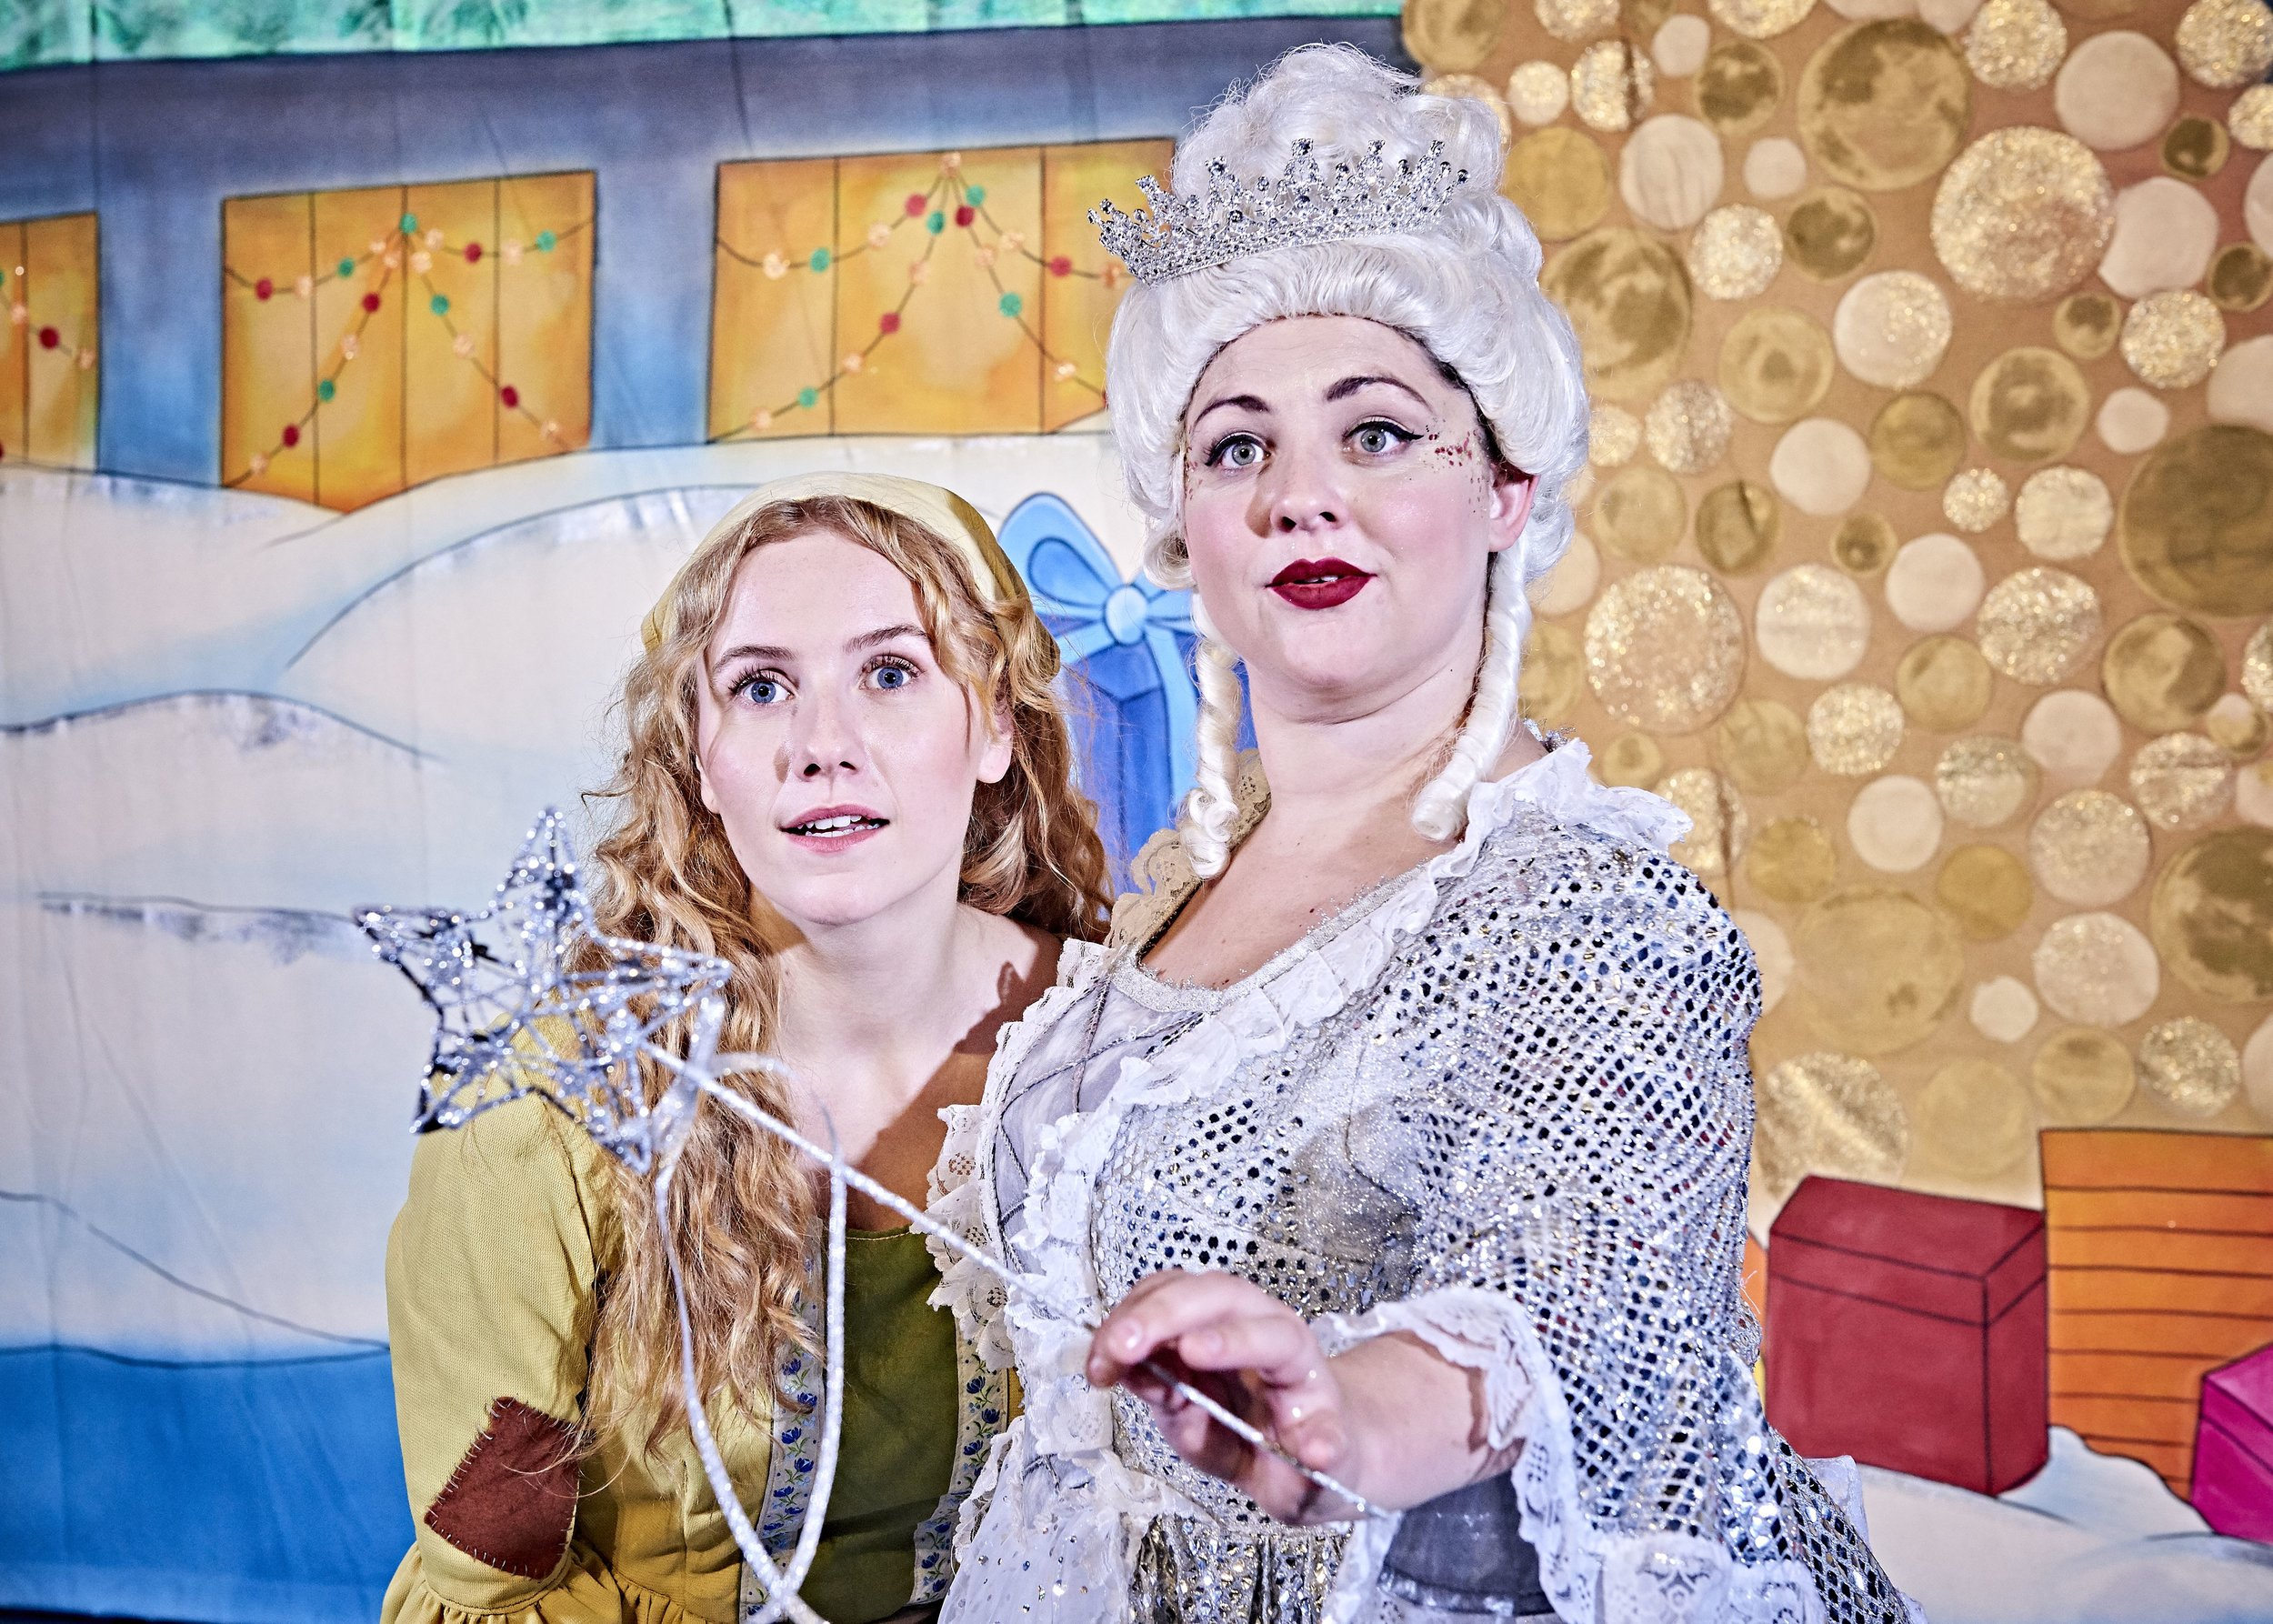 Laura Meaton as Cinderella and Rachel Waring as Fairy Godmother in Cinderella which plays Newport's Riverfront Theatre from November 28 to December 31, 2019.